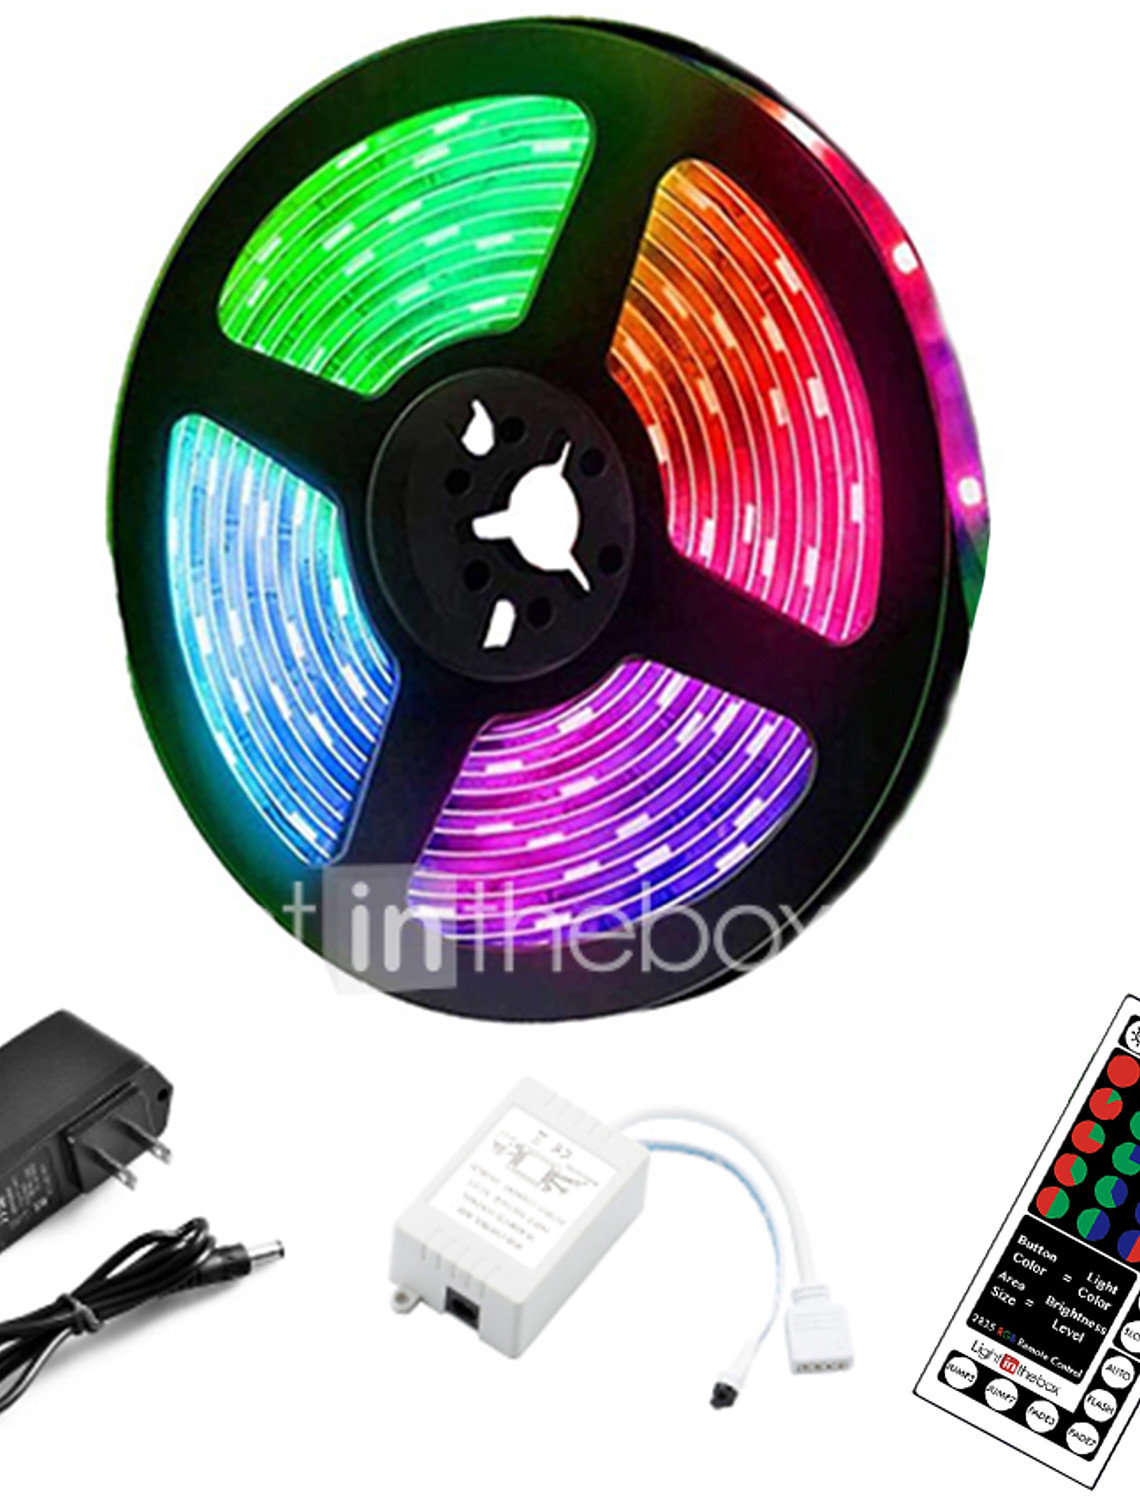 LiNKFOR Car LED Strip Light,4PCS DC 12V Remote Control Interior Lights Multi Color Wireless Music Car Strip Light for Lighting up The Entire Car Interior Plug and Play